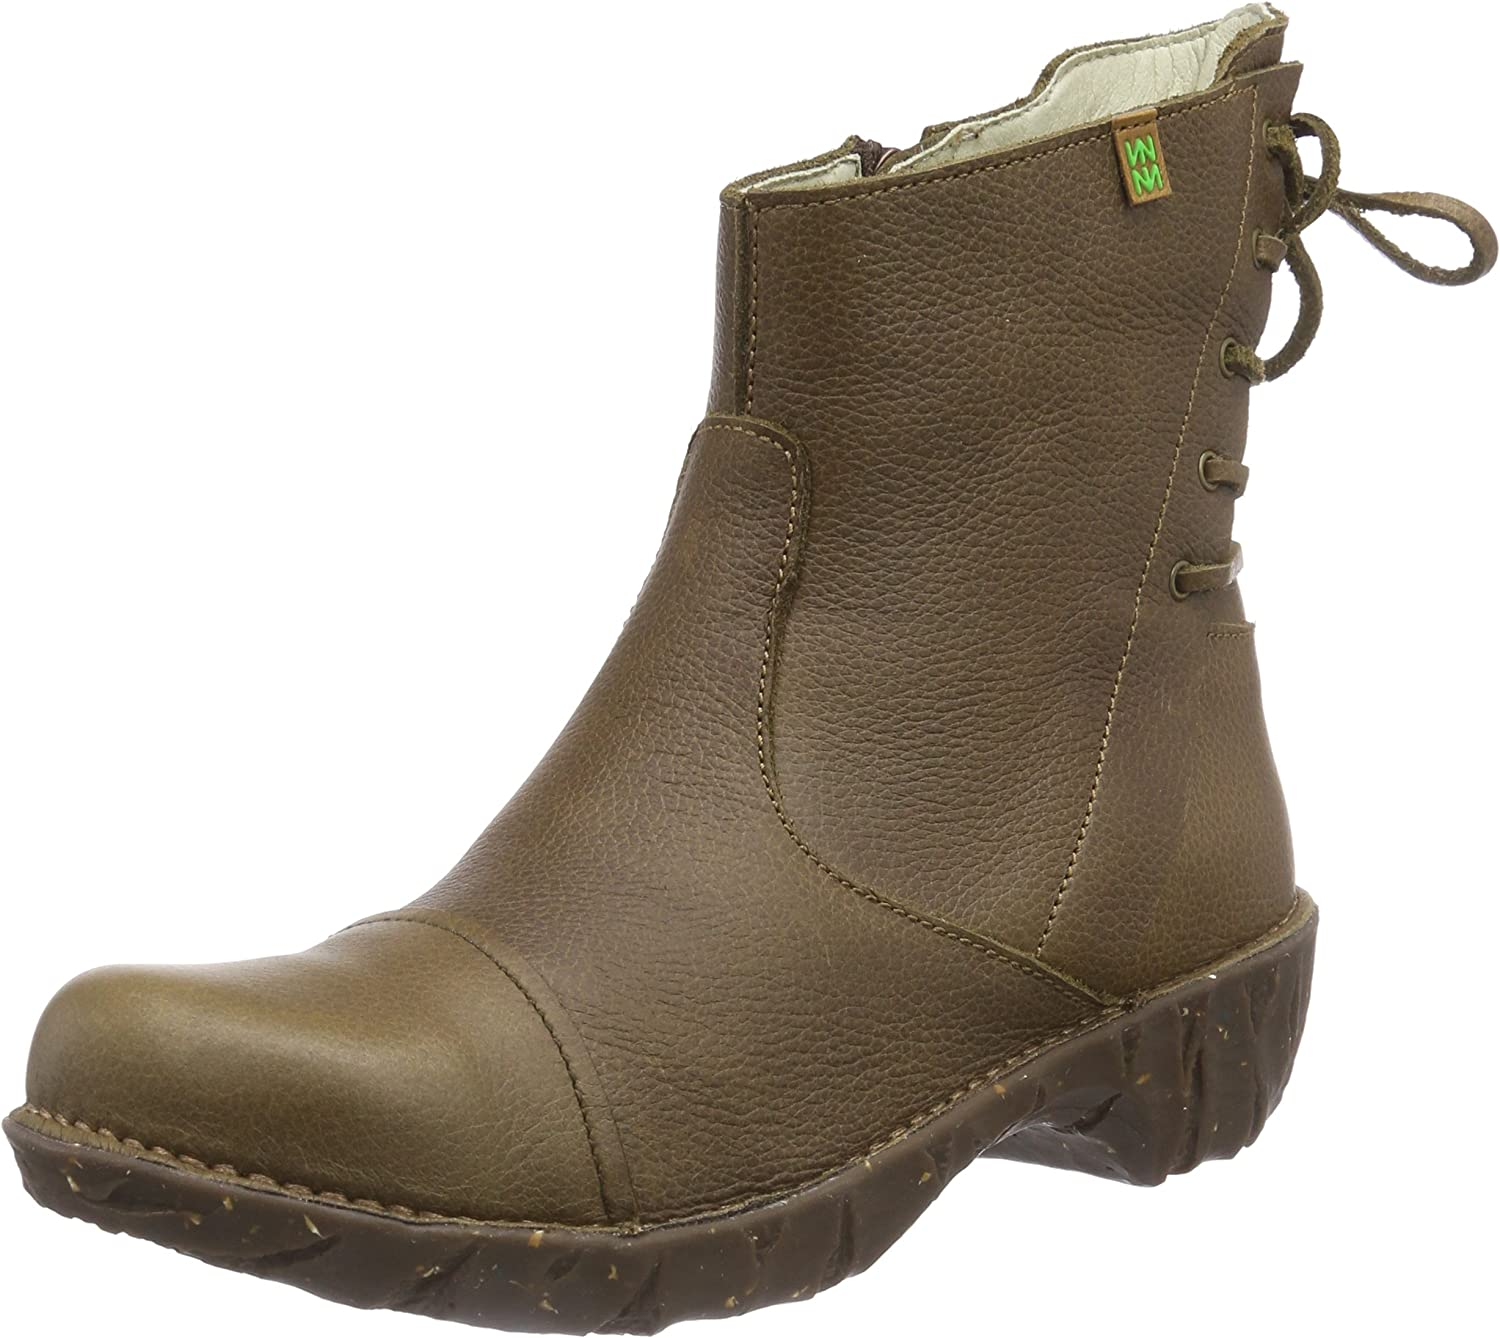 El Naturalista Women's Yggdrasil N148 Winter Boot